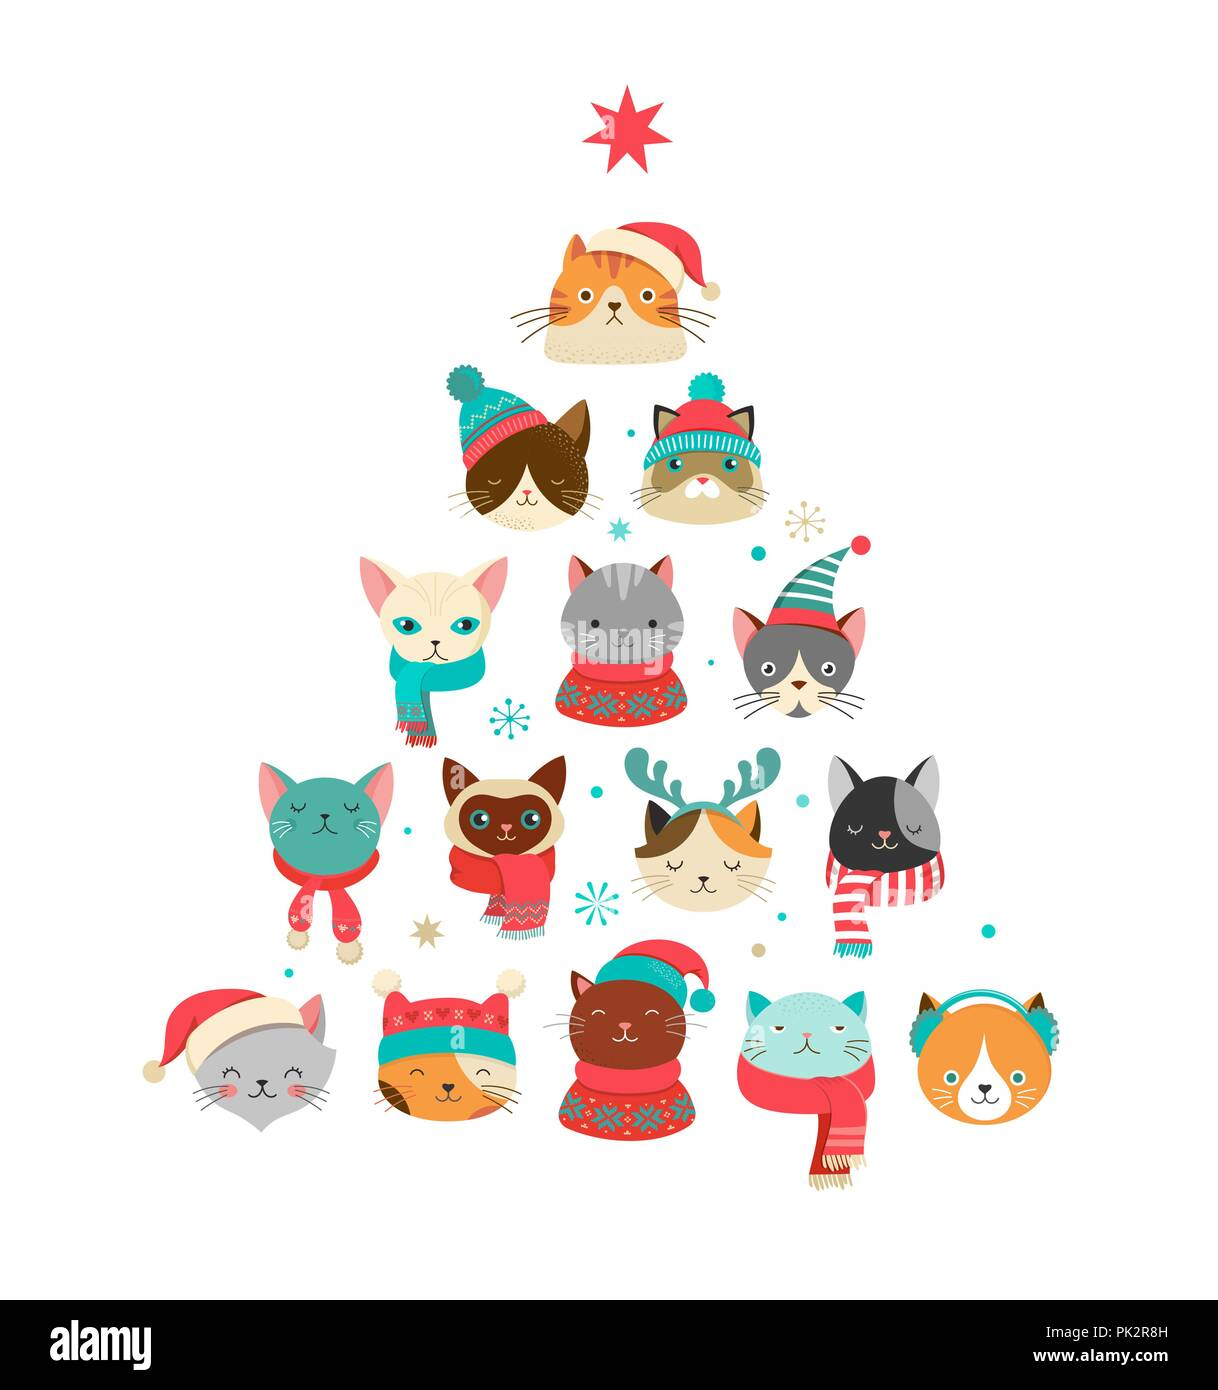 Cute Christmas Pictures.Merry Christmas Greeting Card With Cute Xmas Tree With Cats